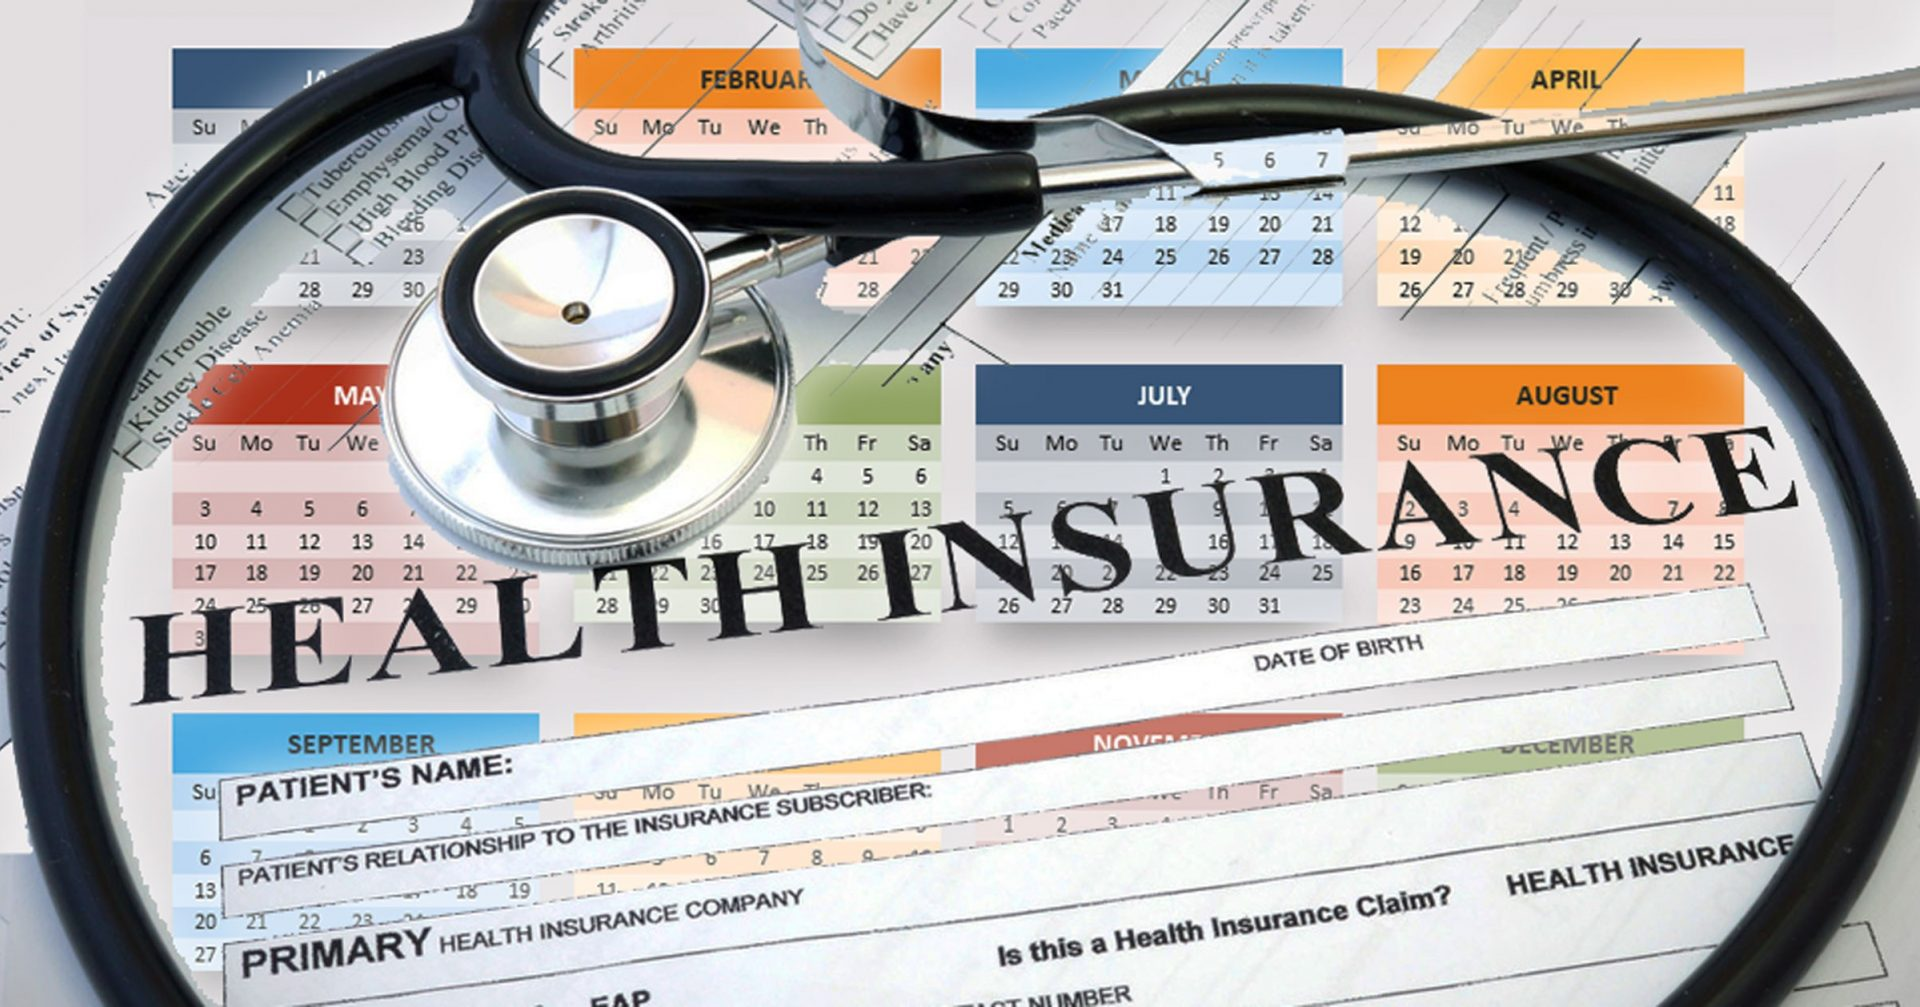 Employee Benefit Open Enrollment Health Insurance